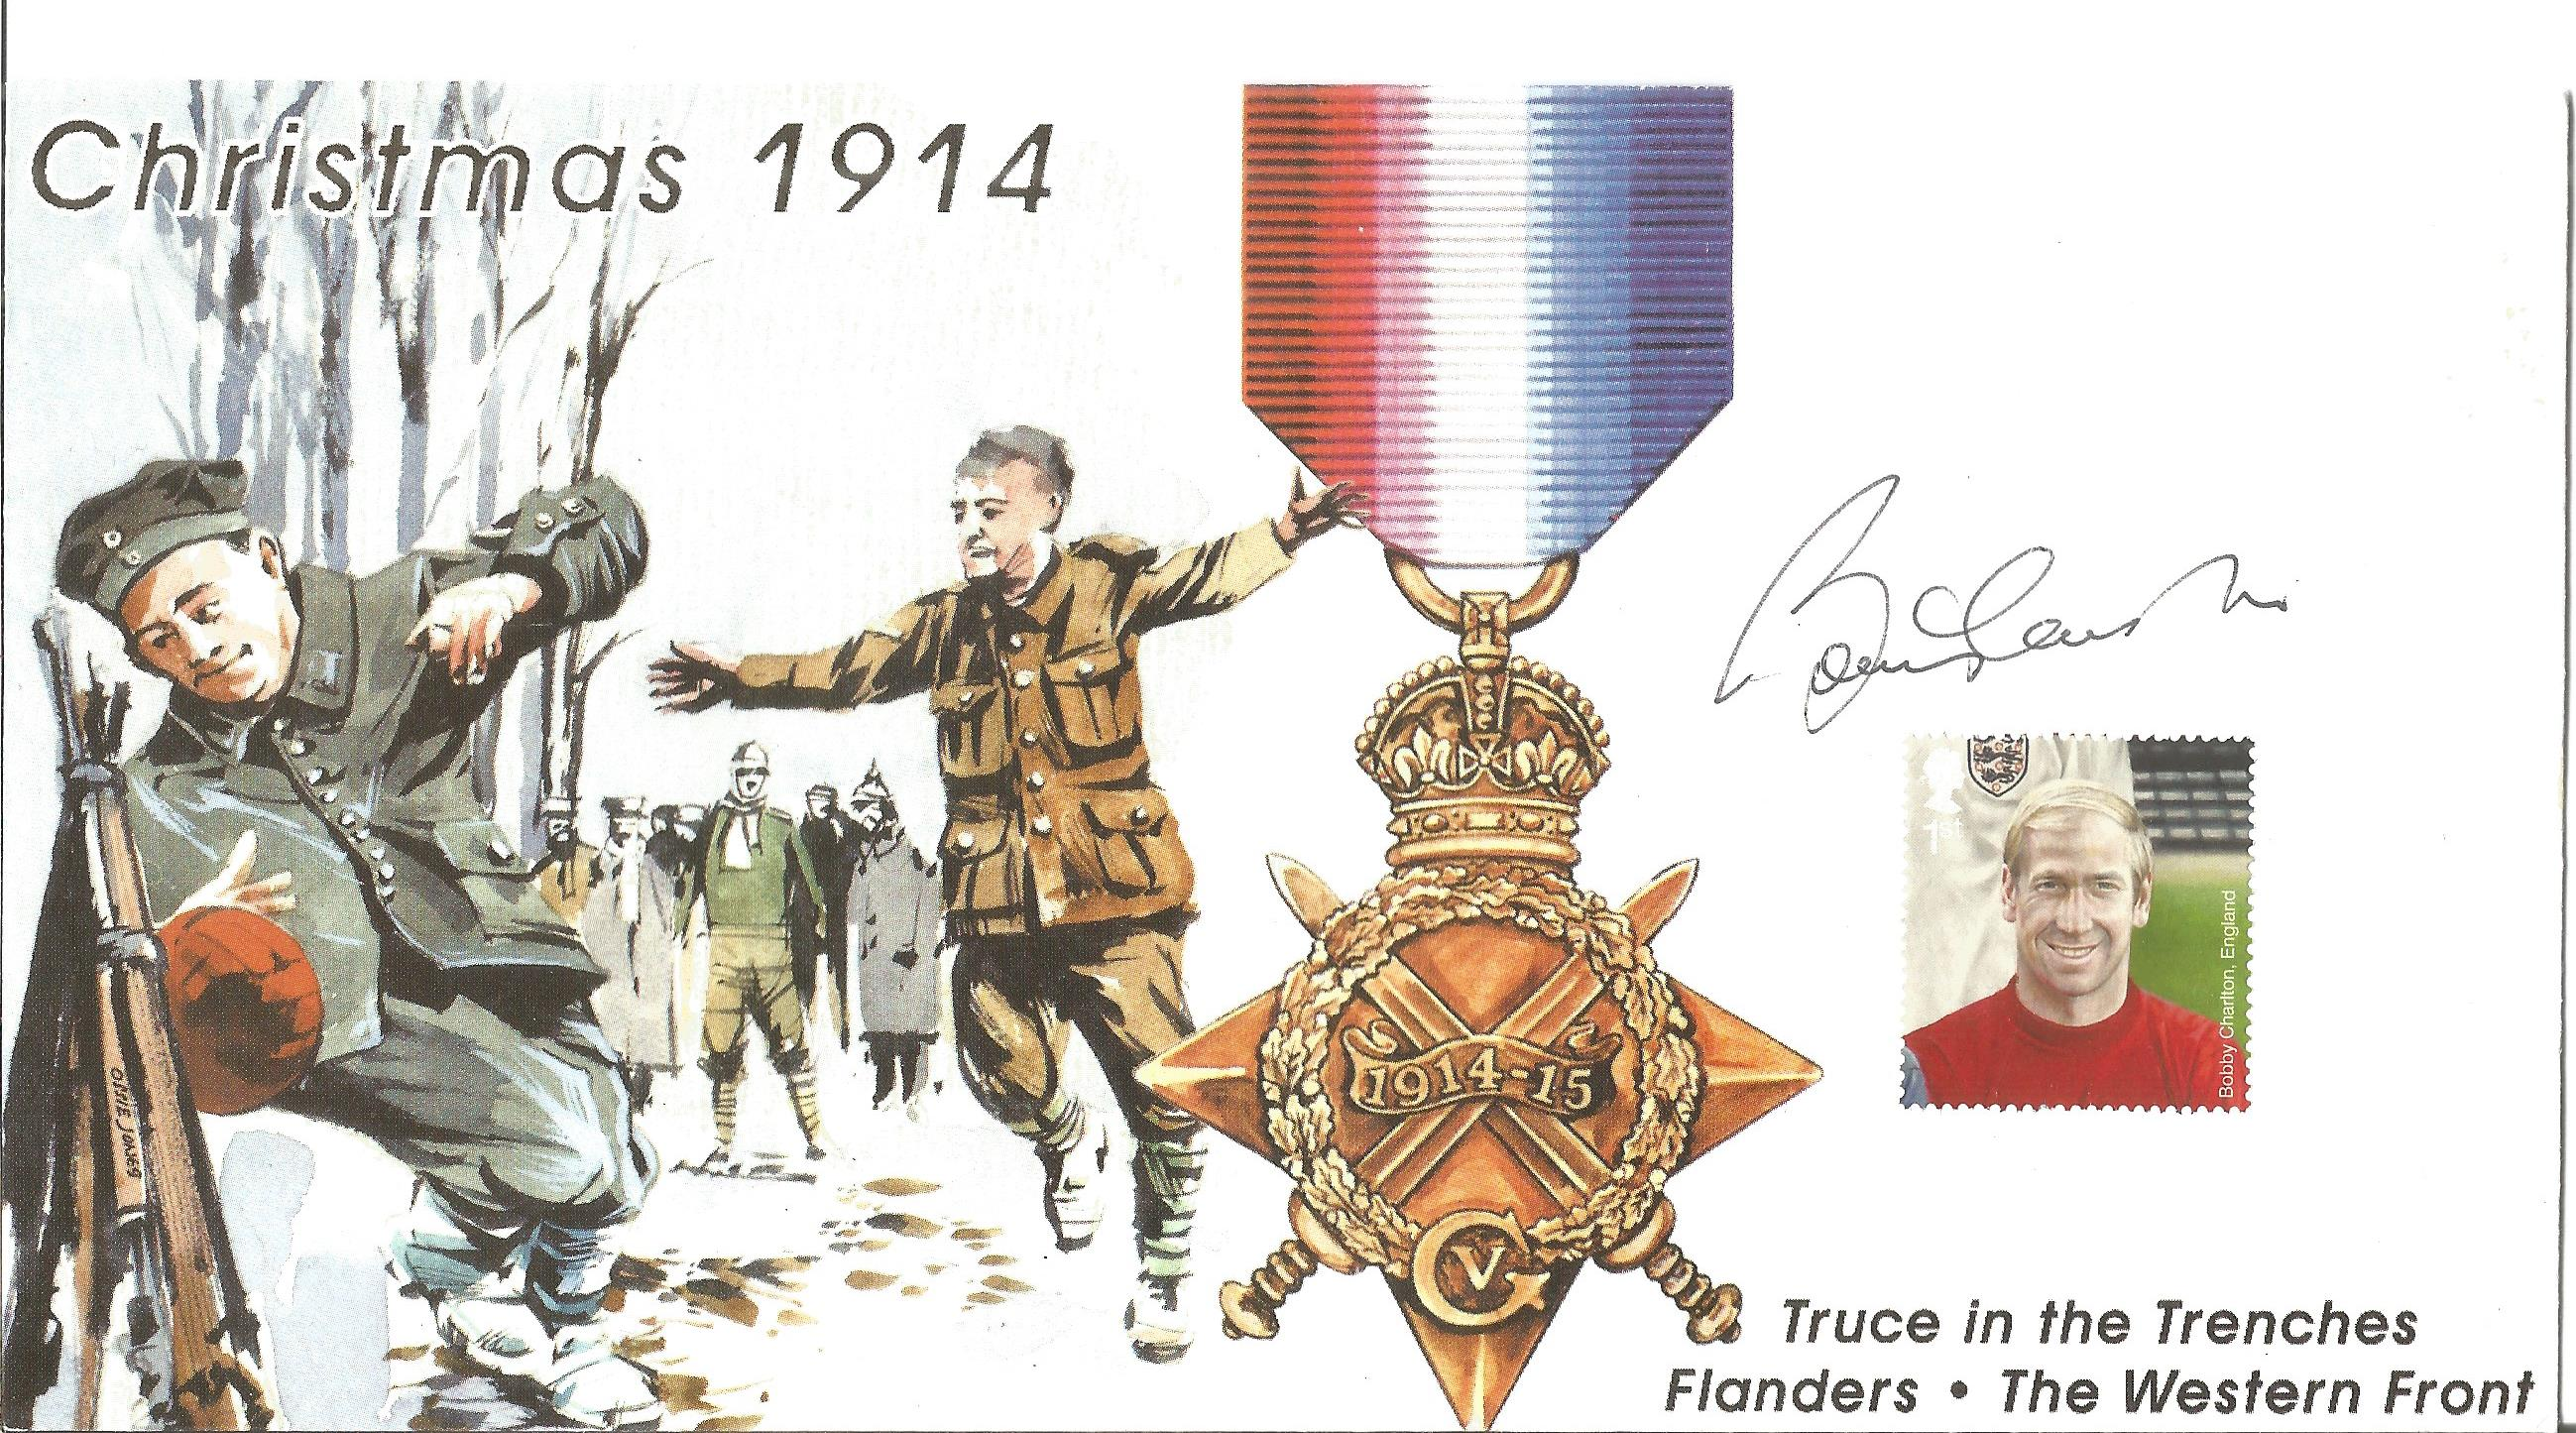 Bobby Charlton signed FDC to commemorate the truce in the trenches Christmas 1914 on the western